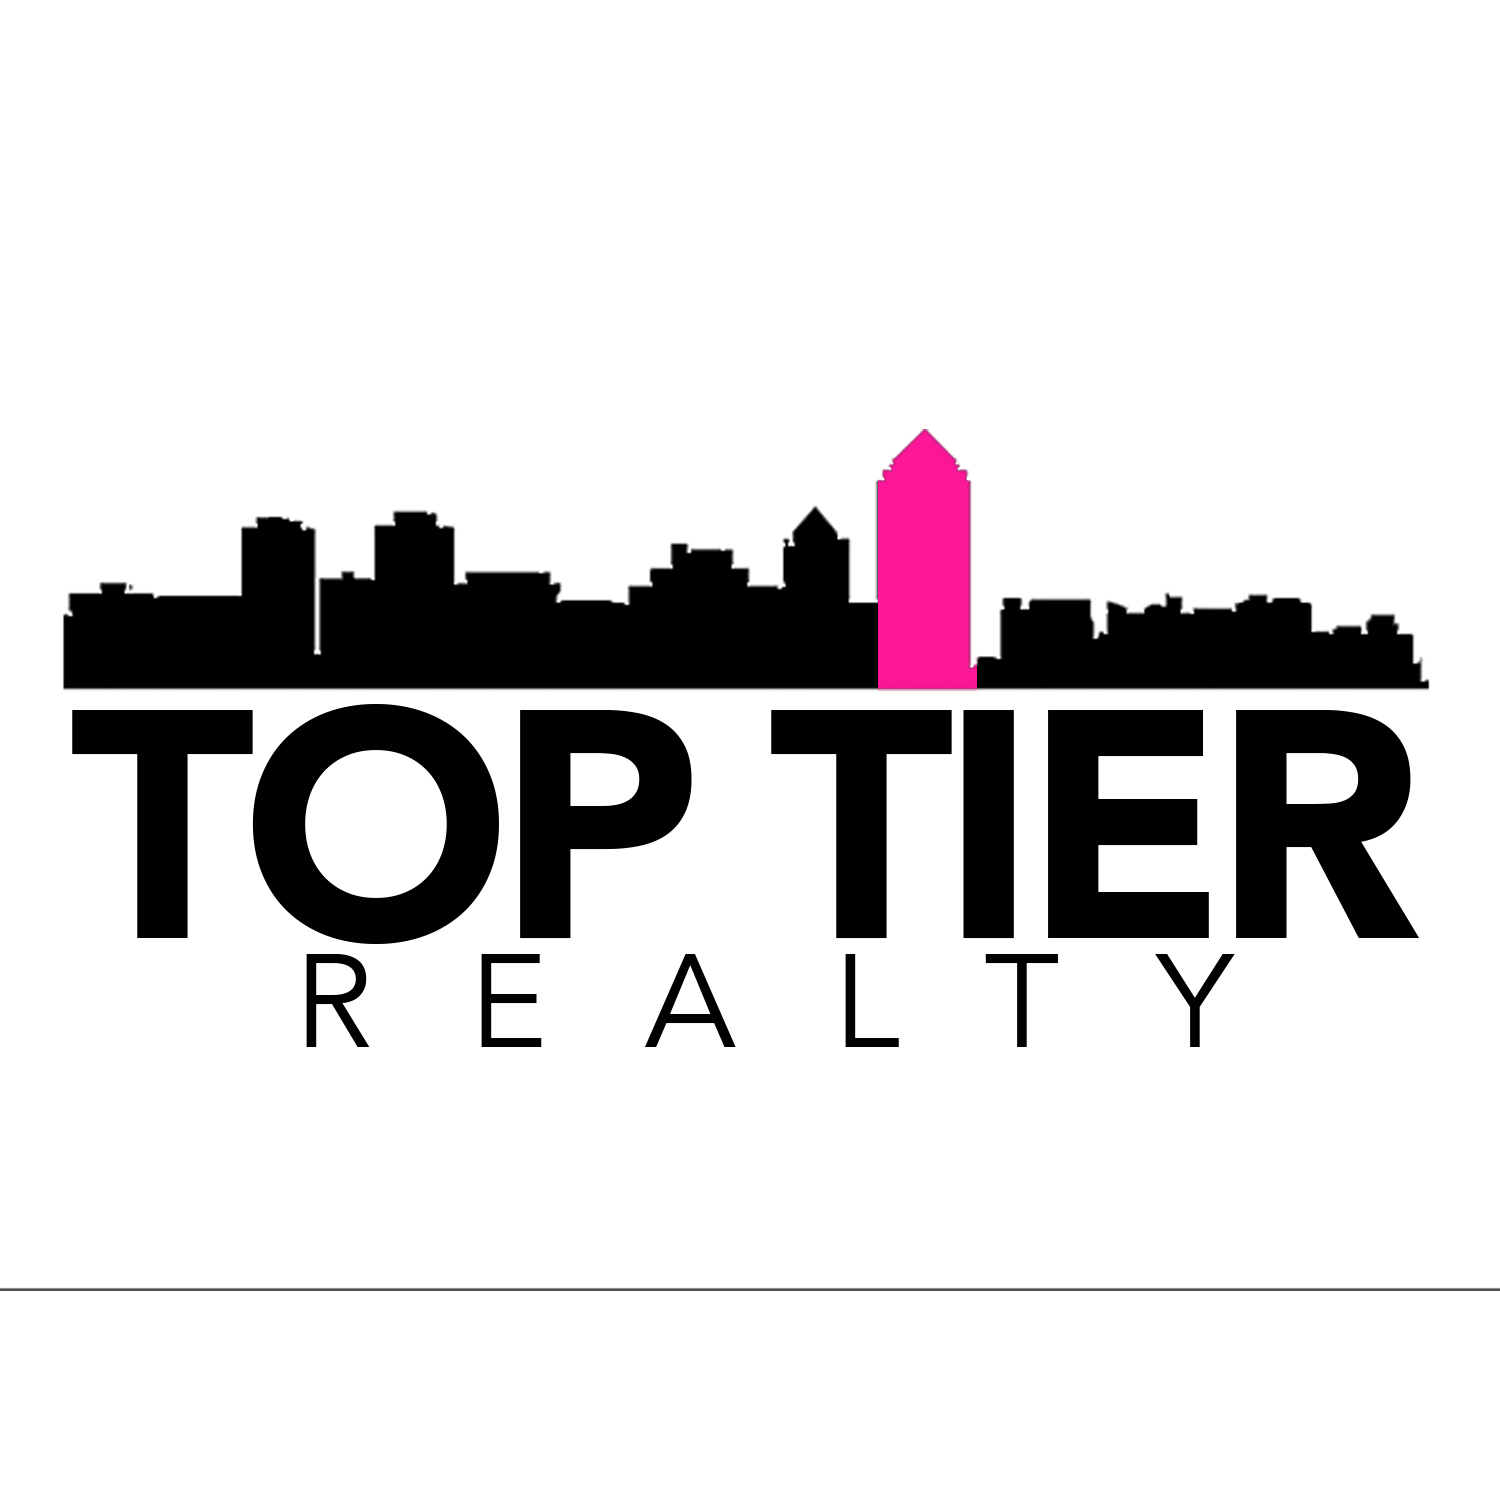 Top Tier Realty